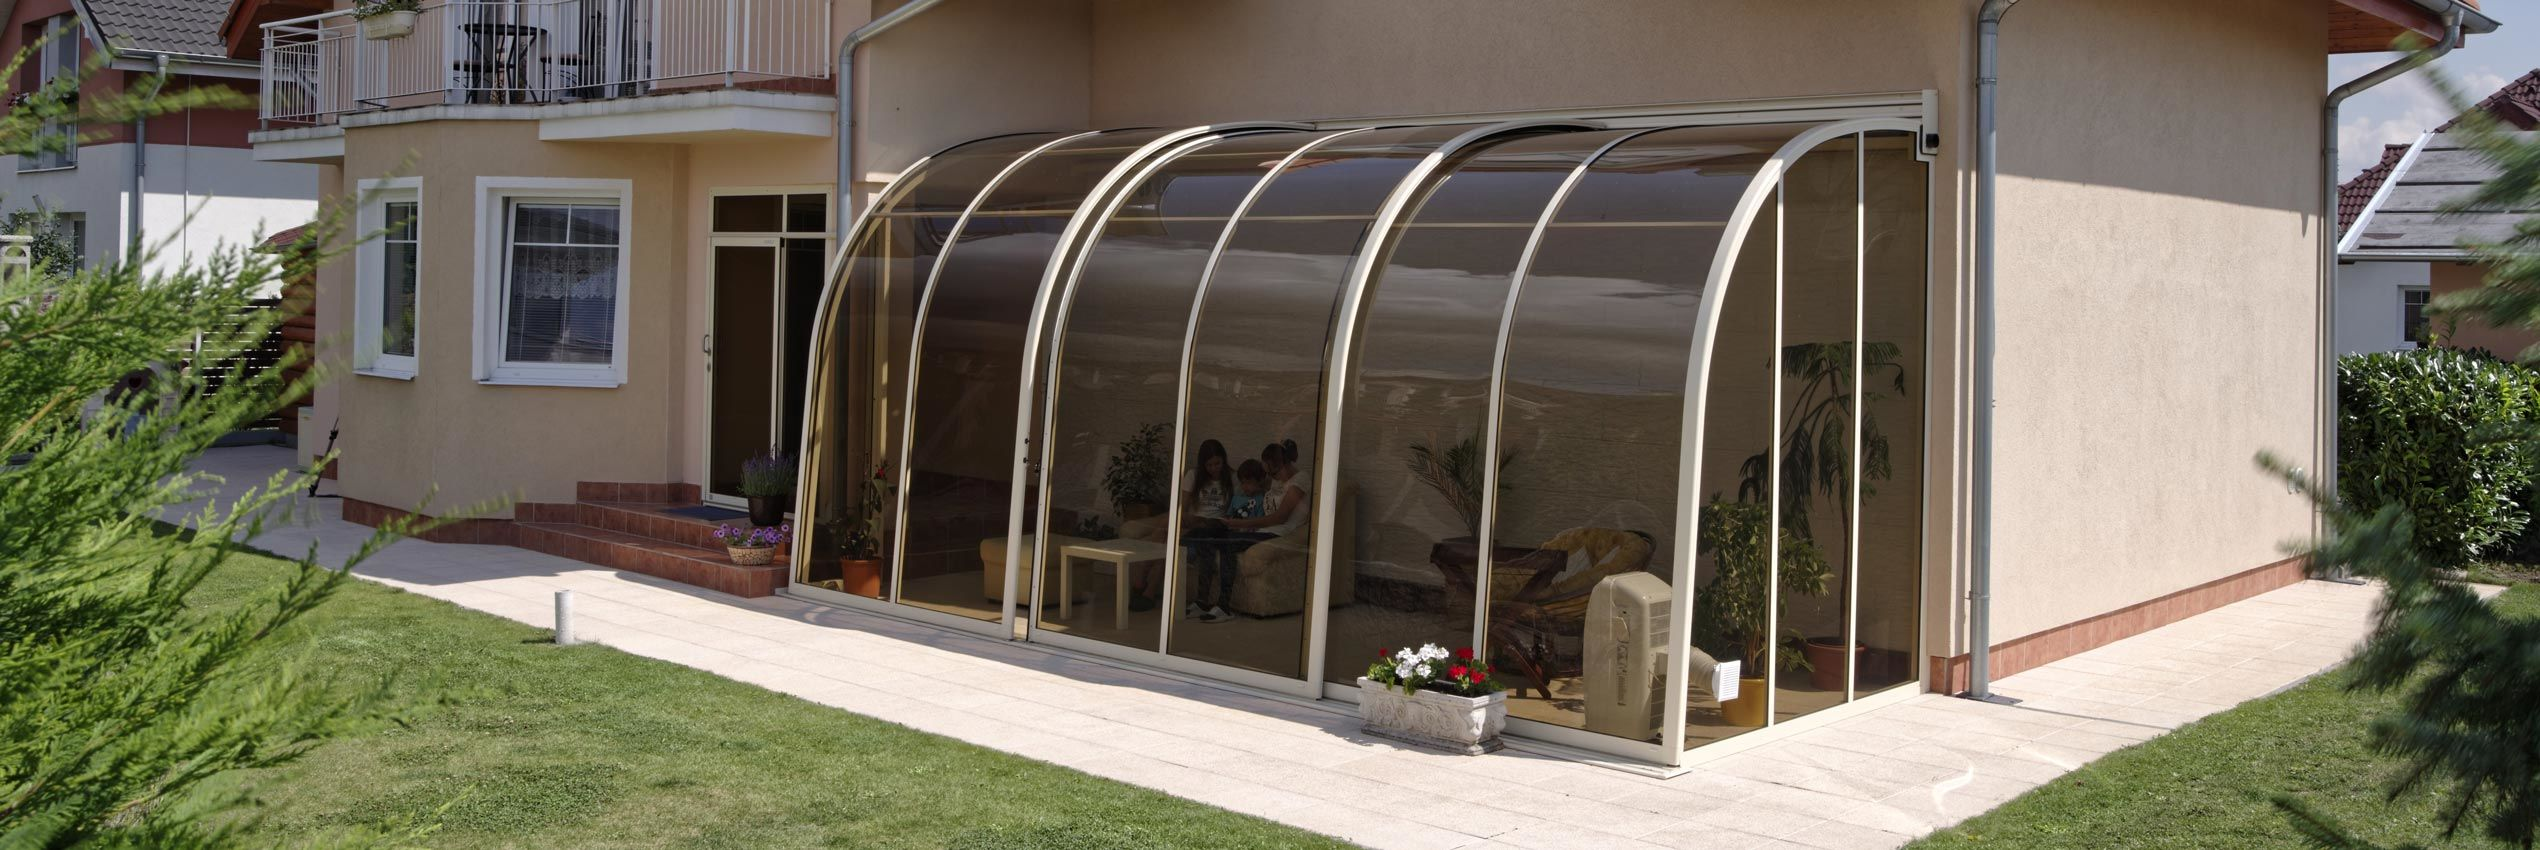 Closed patio enclosure Corso entry